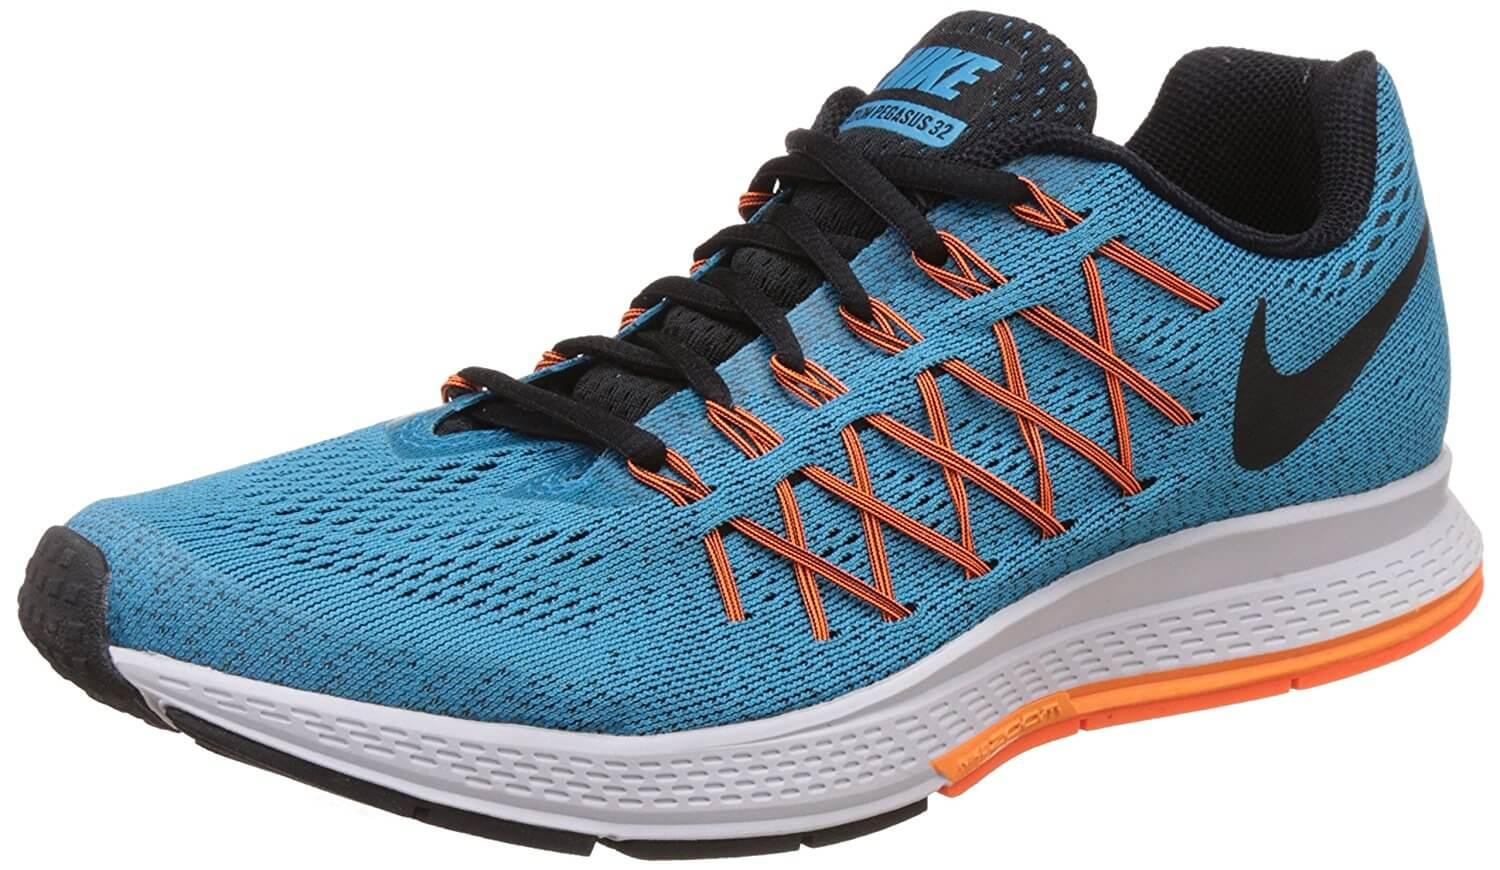 daa6e998c257 Nike Air Zoom Pegasus 32 - To Buy or Not in May 2019